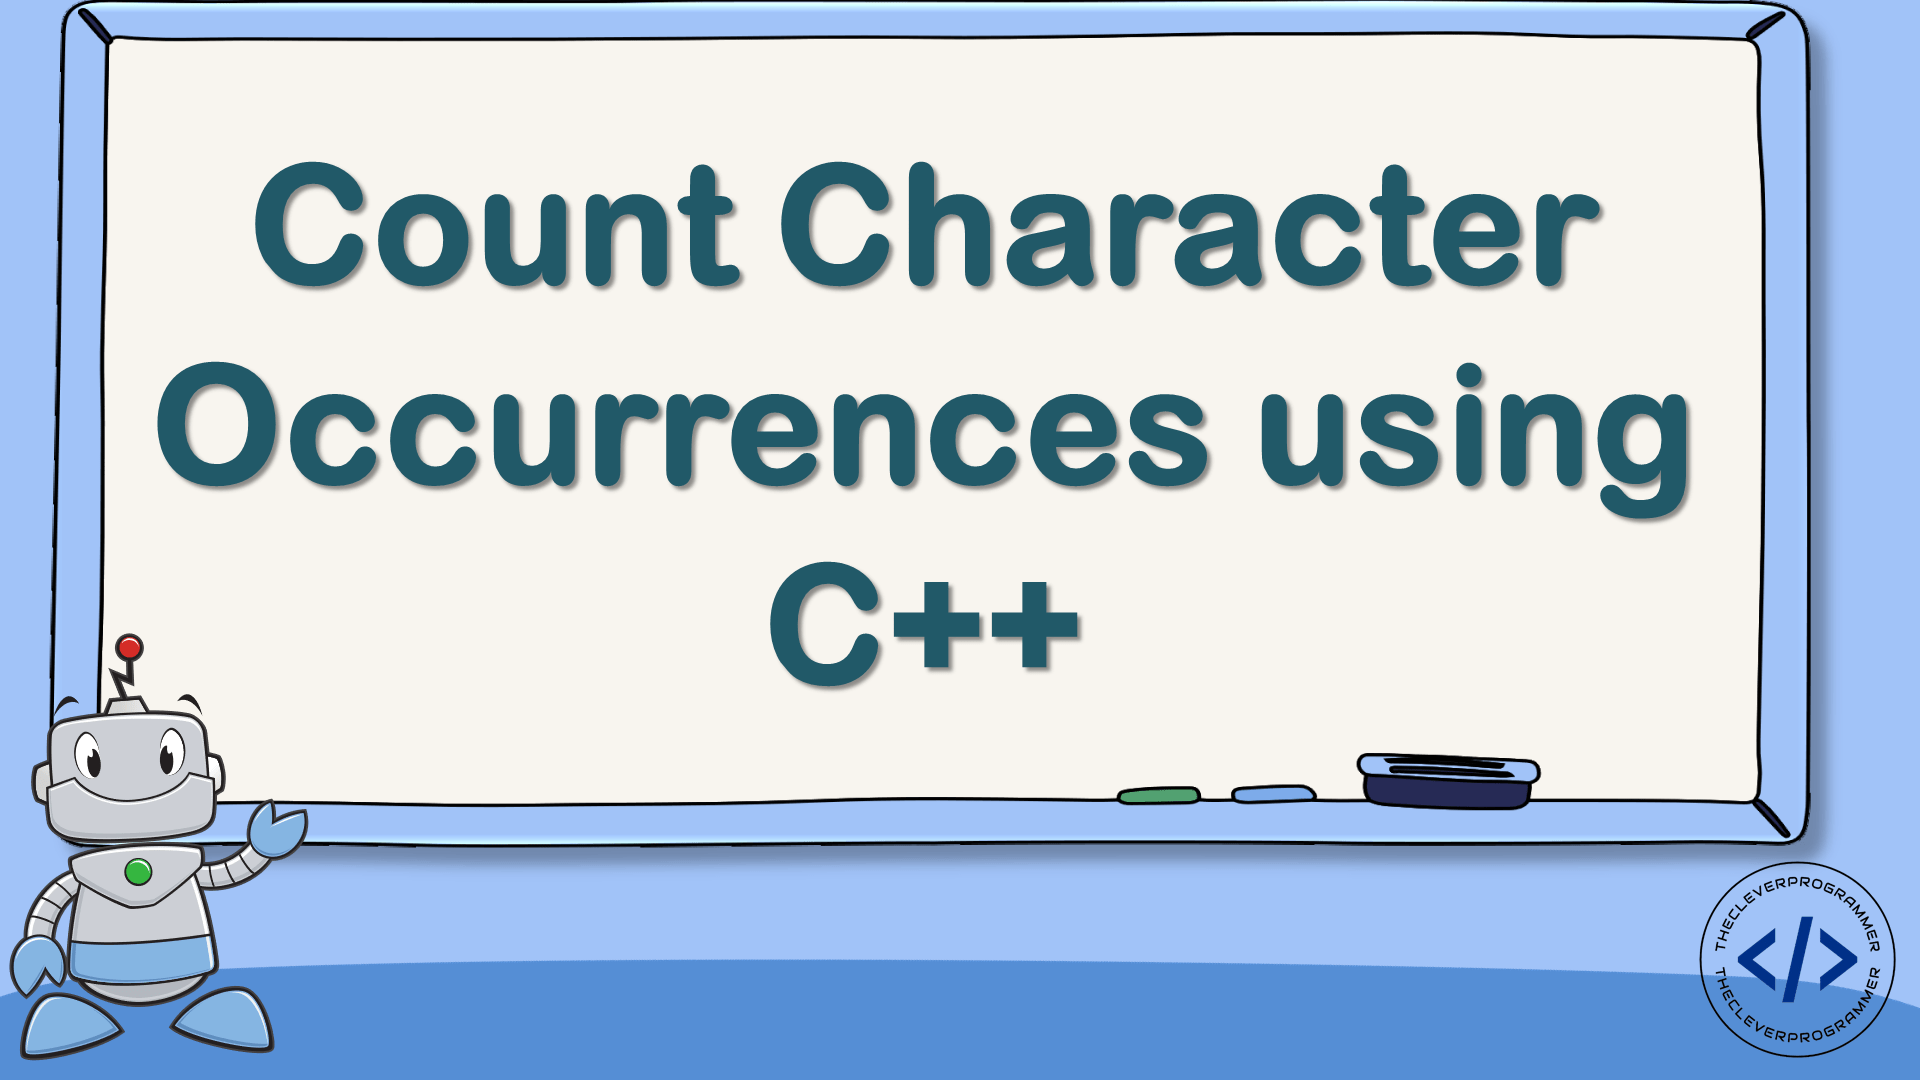 Count Character Occurrences using C++